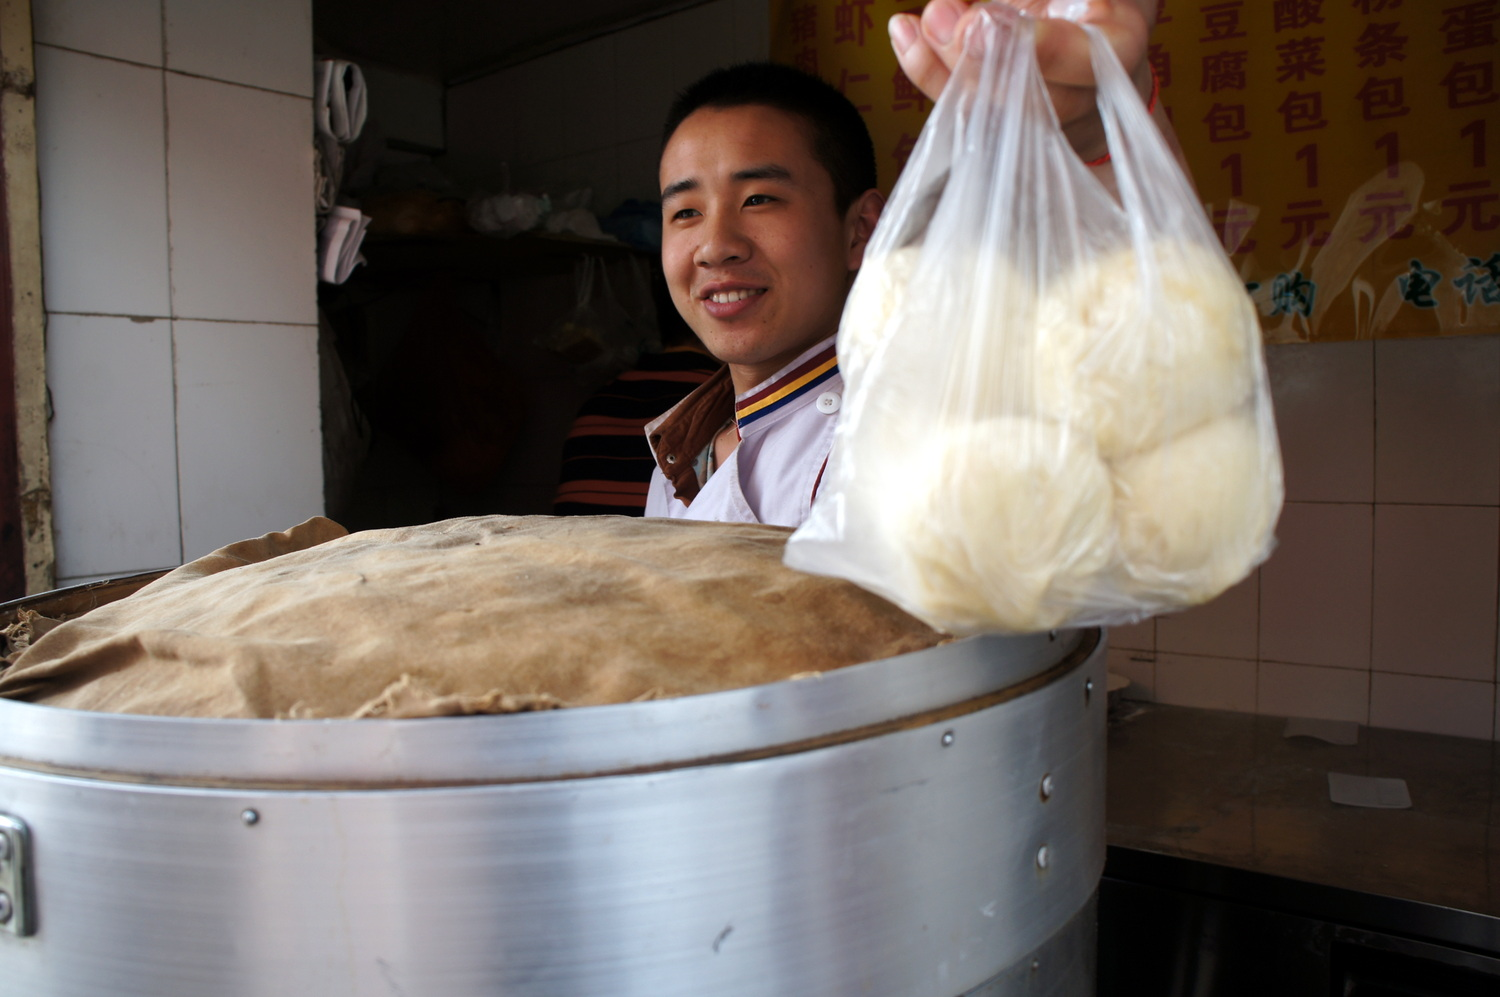 Buying some baozi - Chinese dumplings